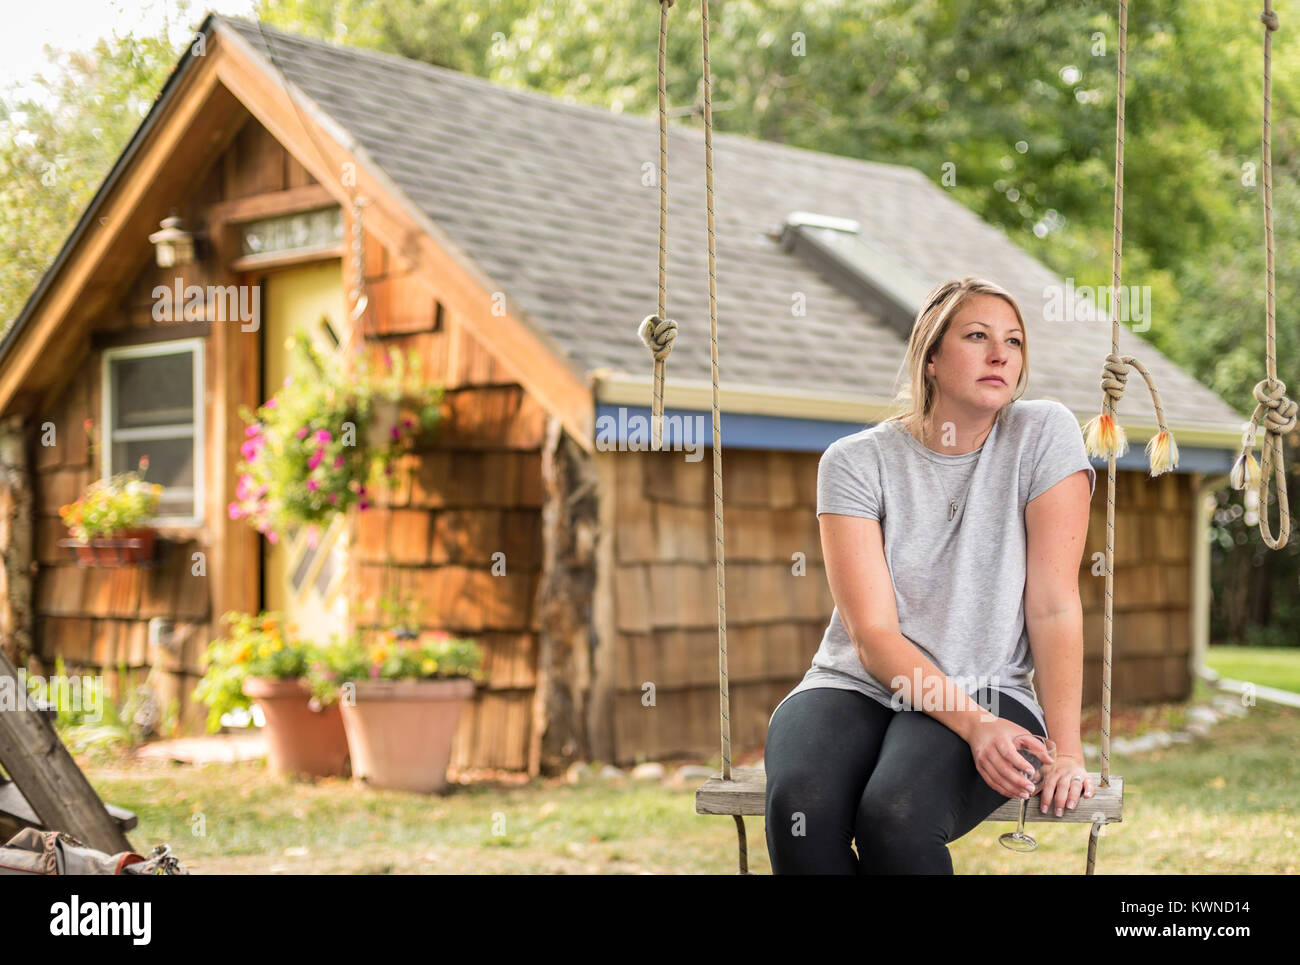 millenial woman sitting in backyard on swing with glass of wine thinking - Stock Image